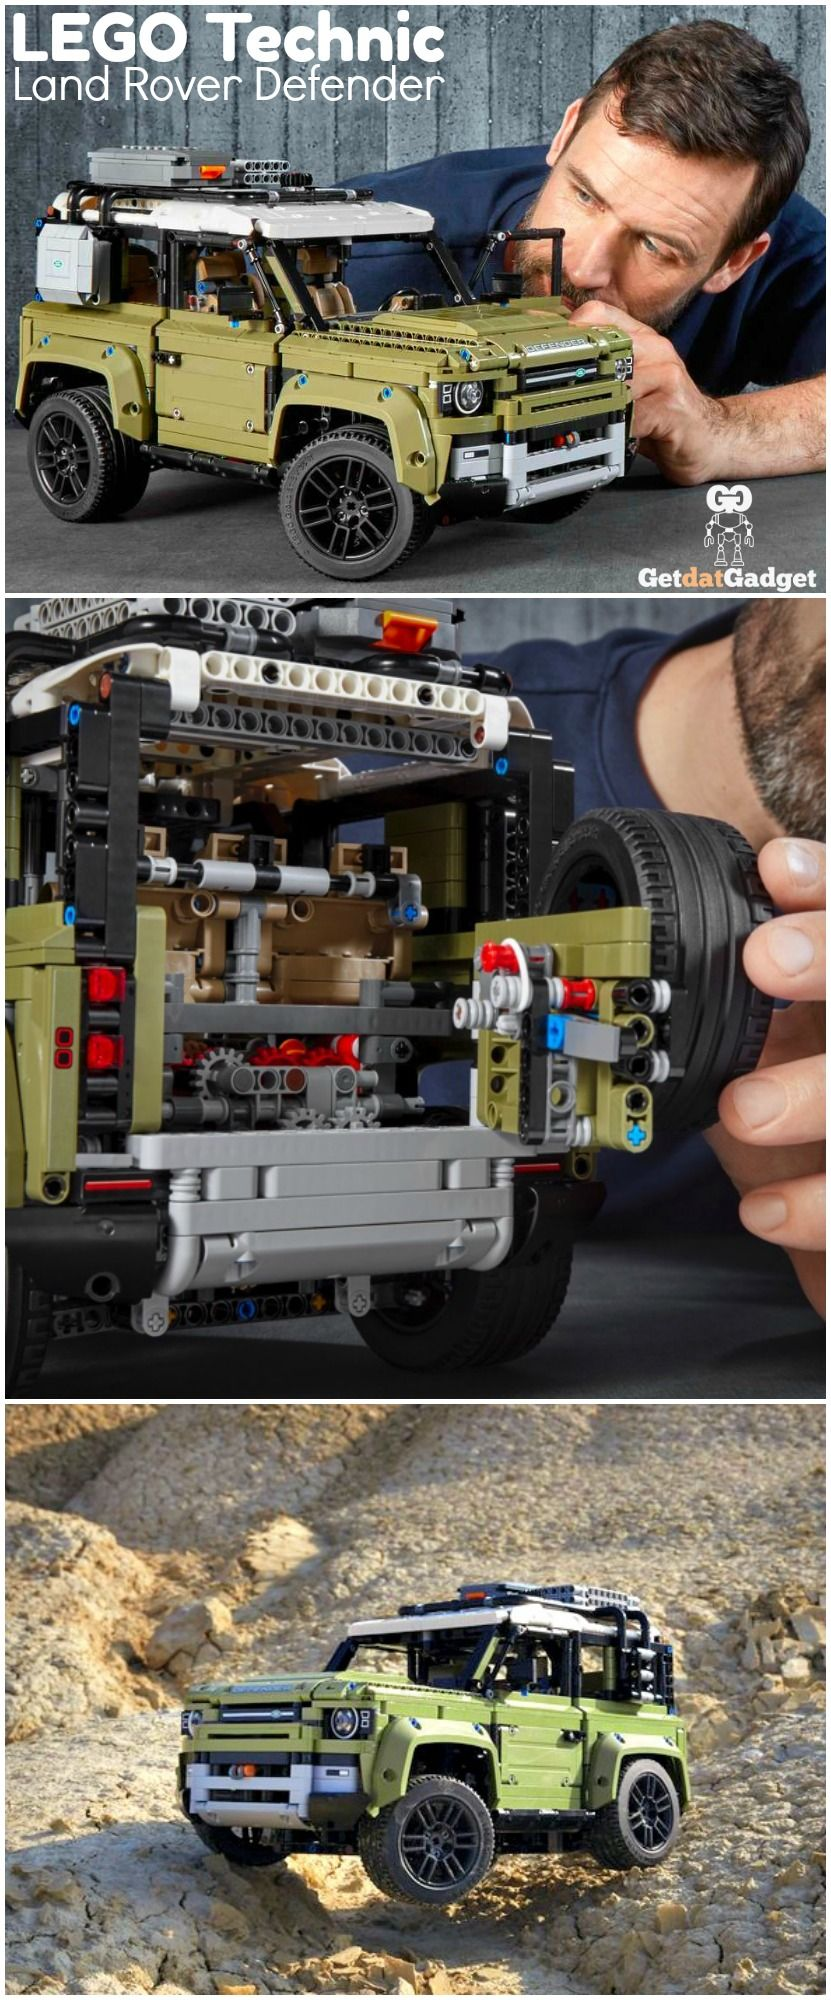 Lego Land Rover Defender With Working High And Low Range Gears